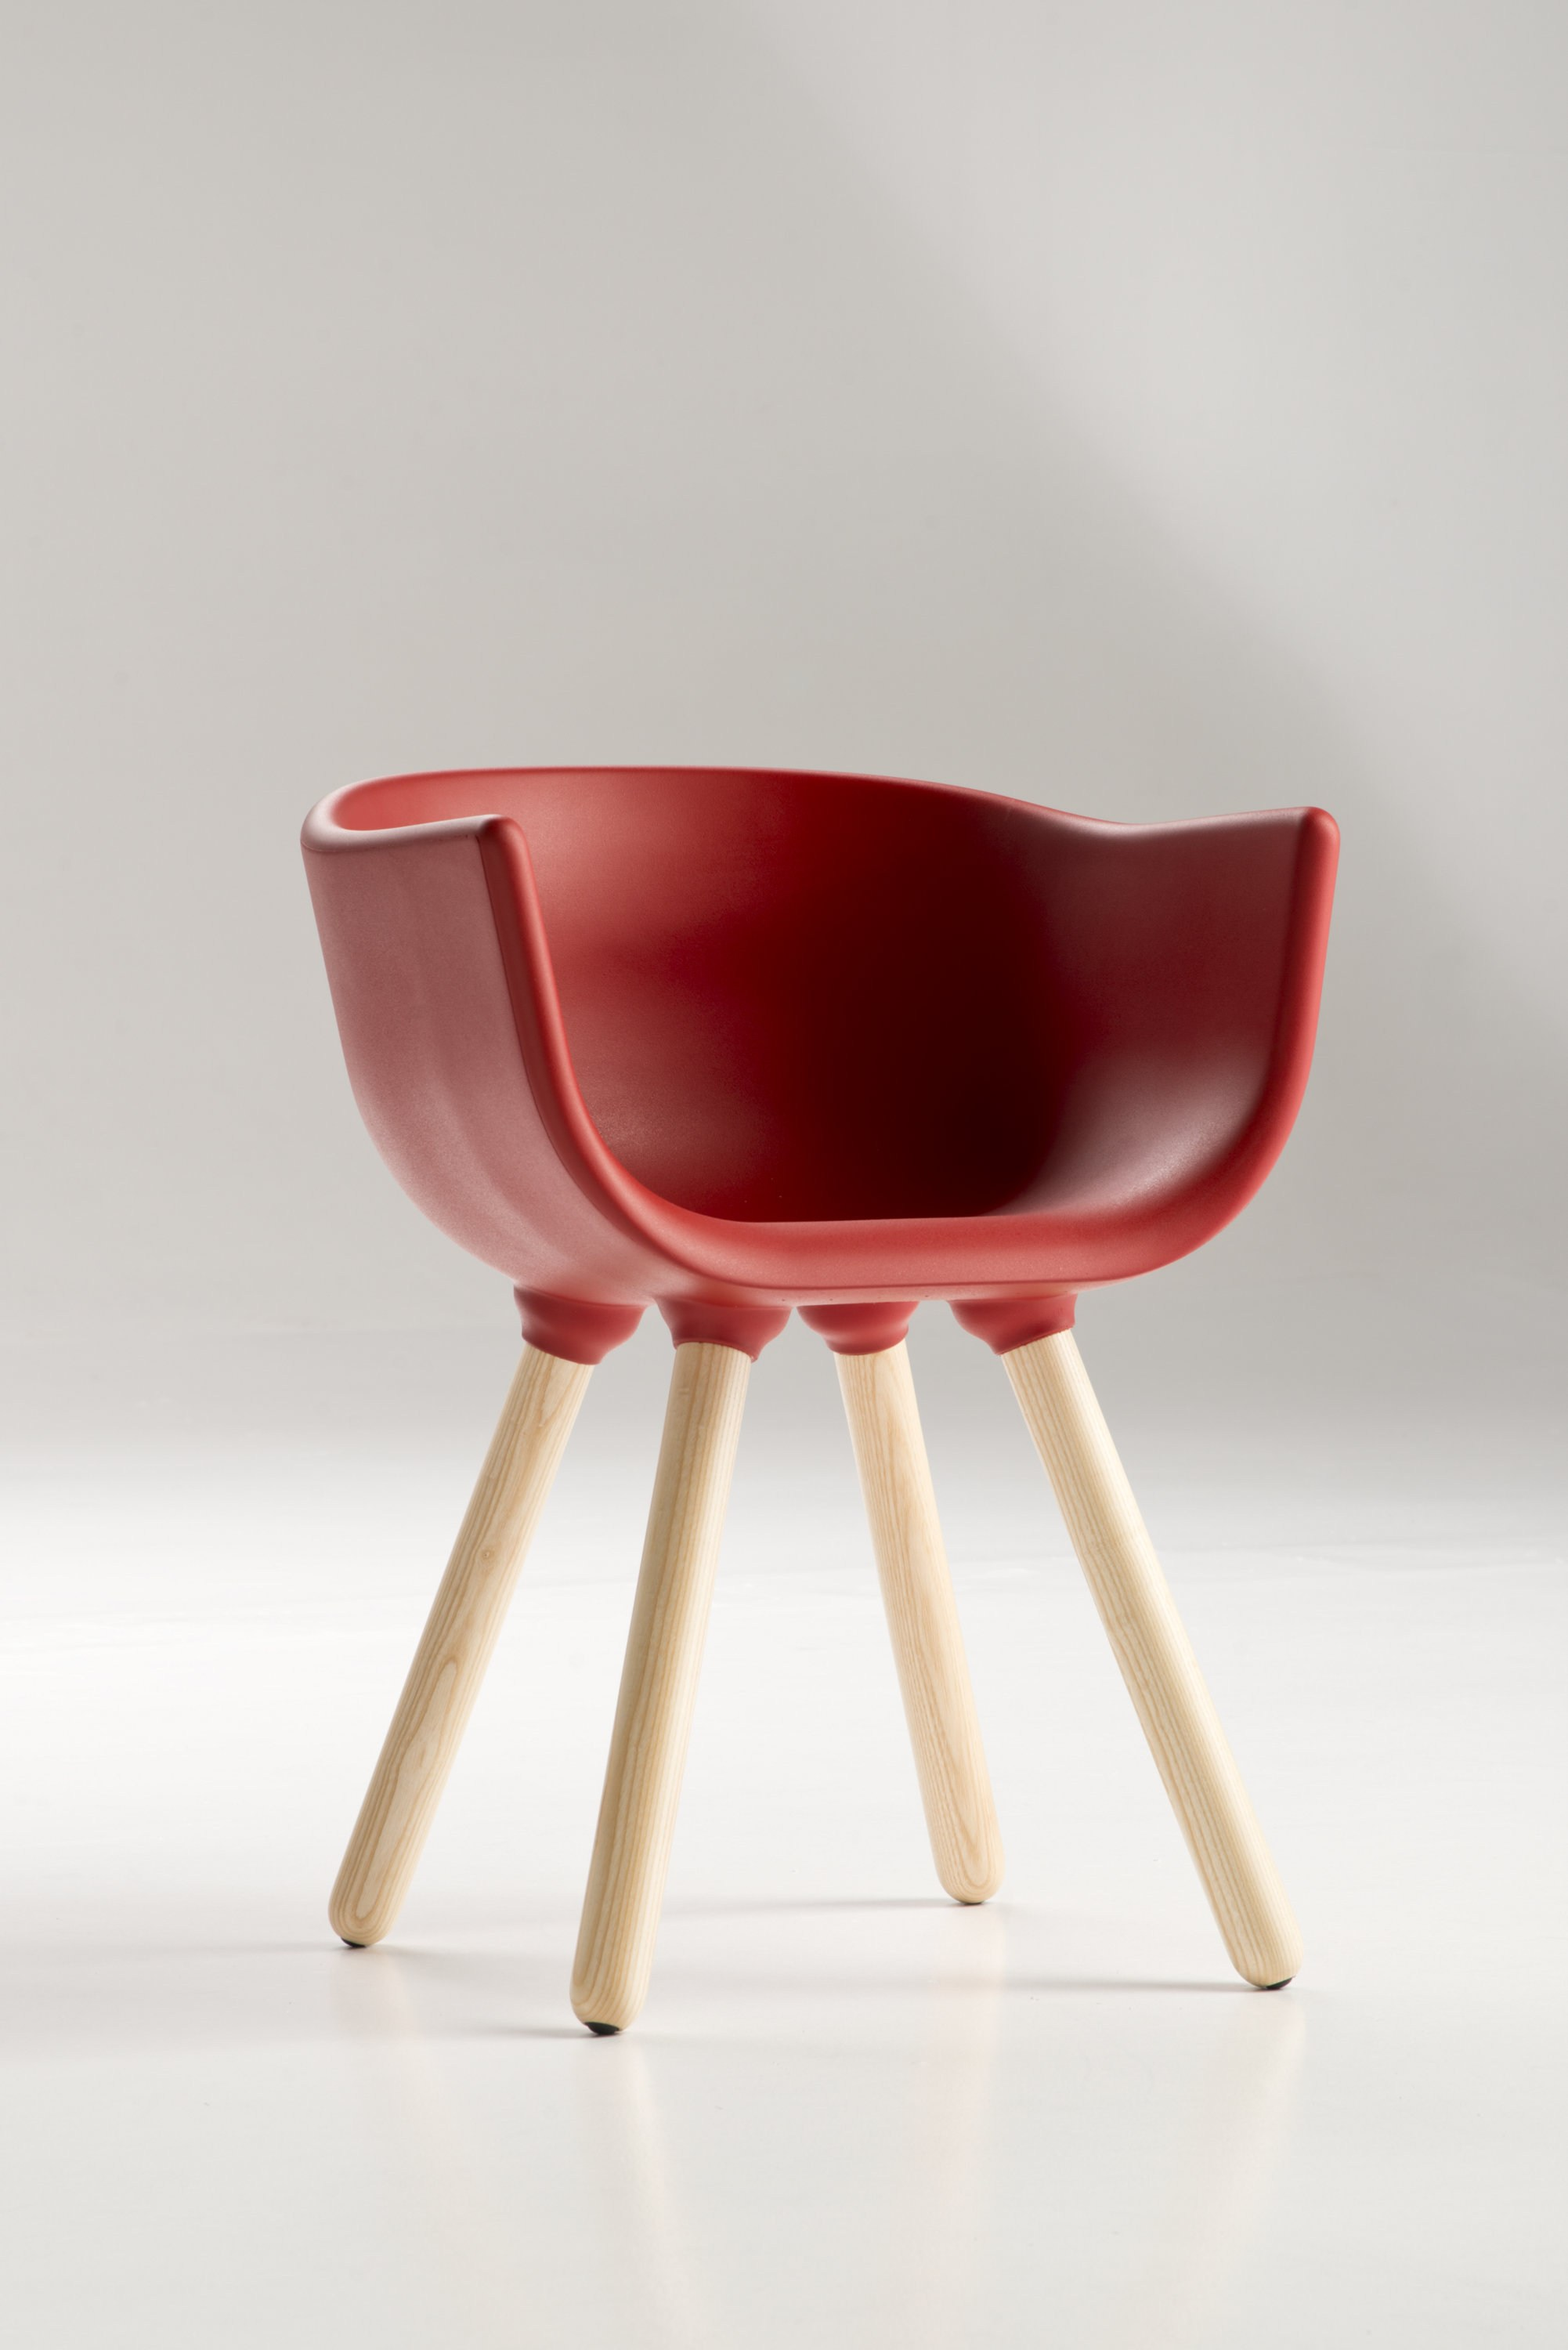 Tulip Small Chair by Kazuko Okamoto for Chairs & More